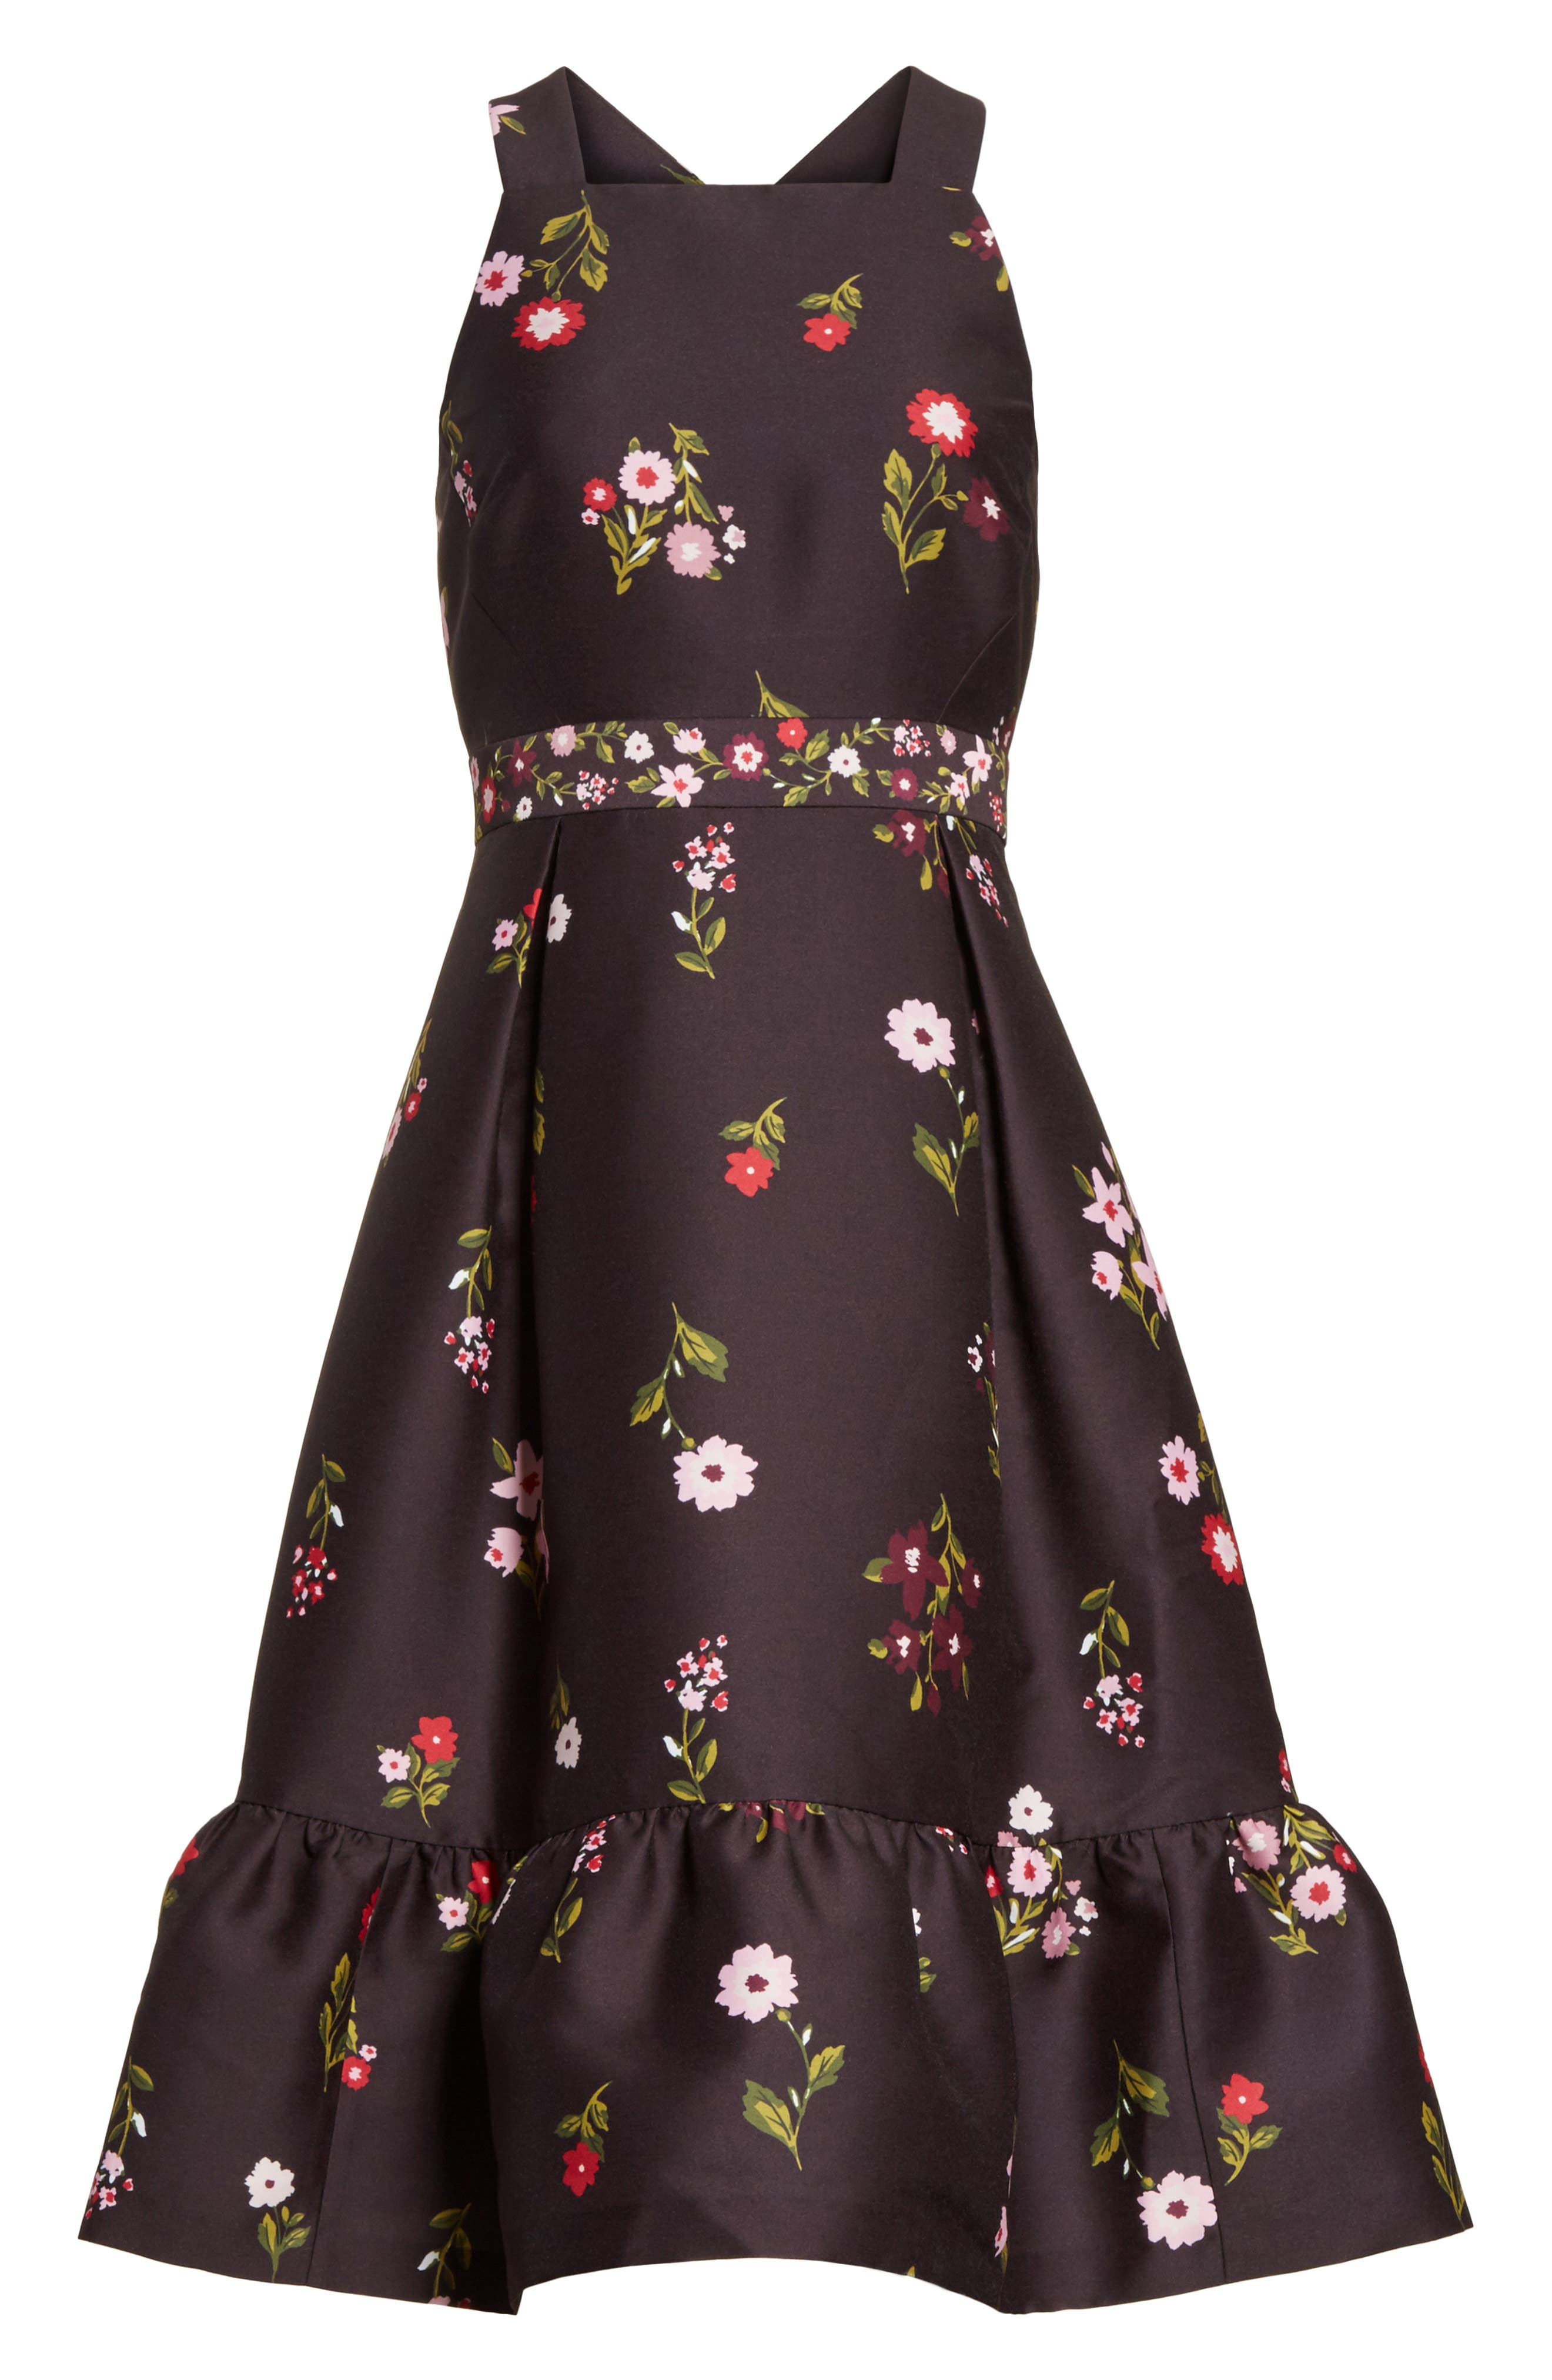 in bloom fit & flare dress,                             Alternate thumbnail 6, color,                             006